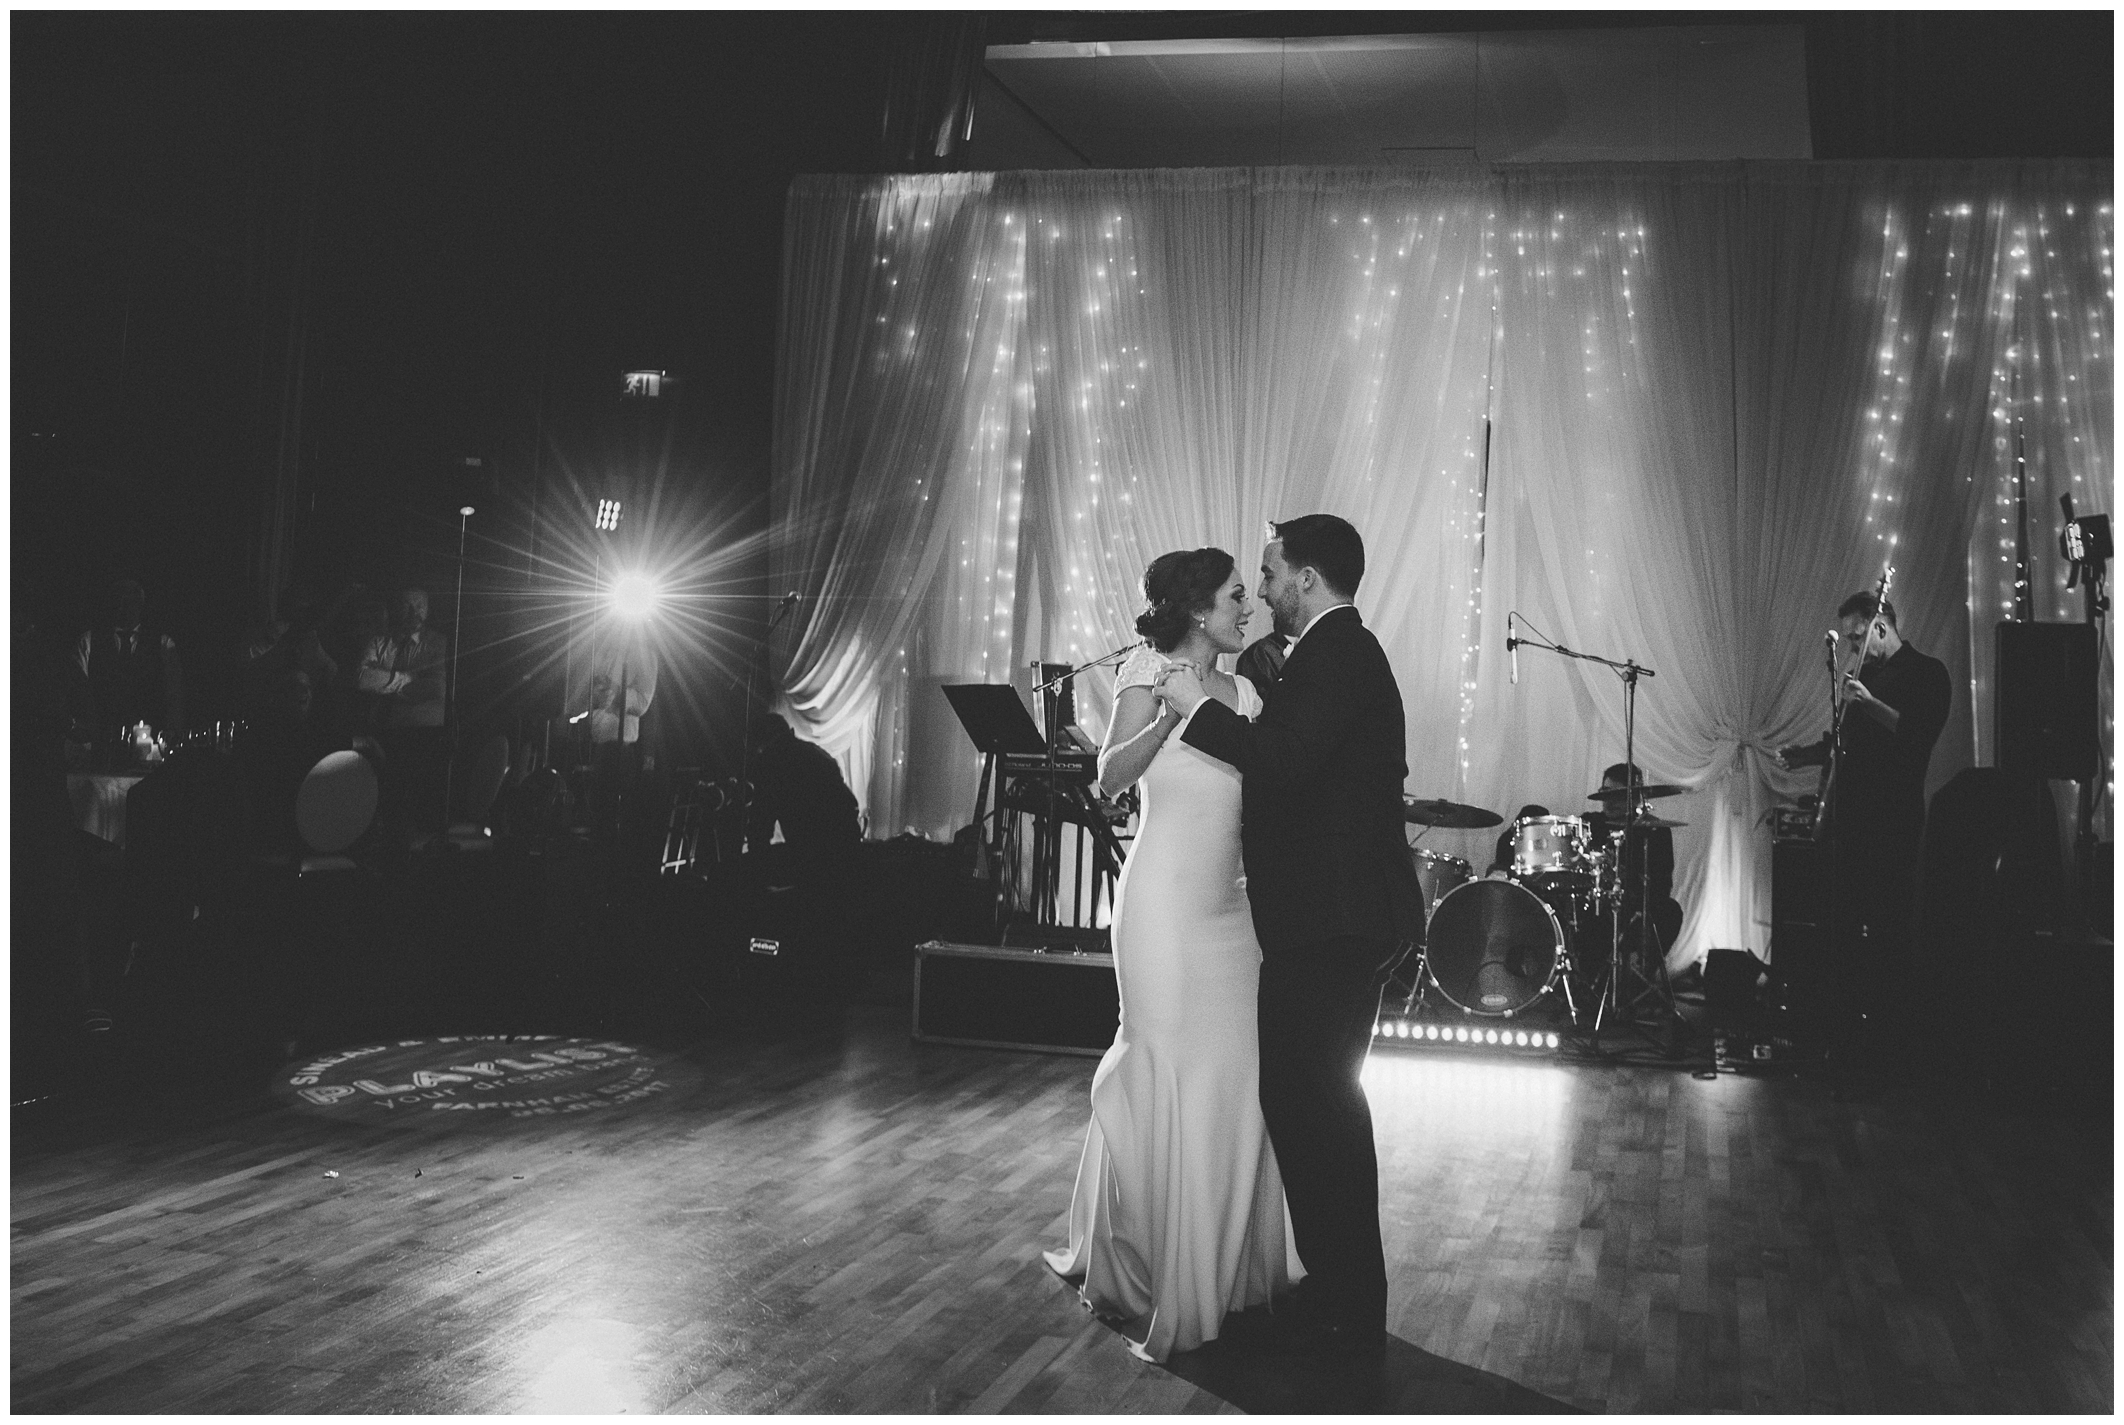 sinead_emmet_farnham_estate_wedding_jude_browne_photography_0152.jpg